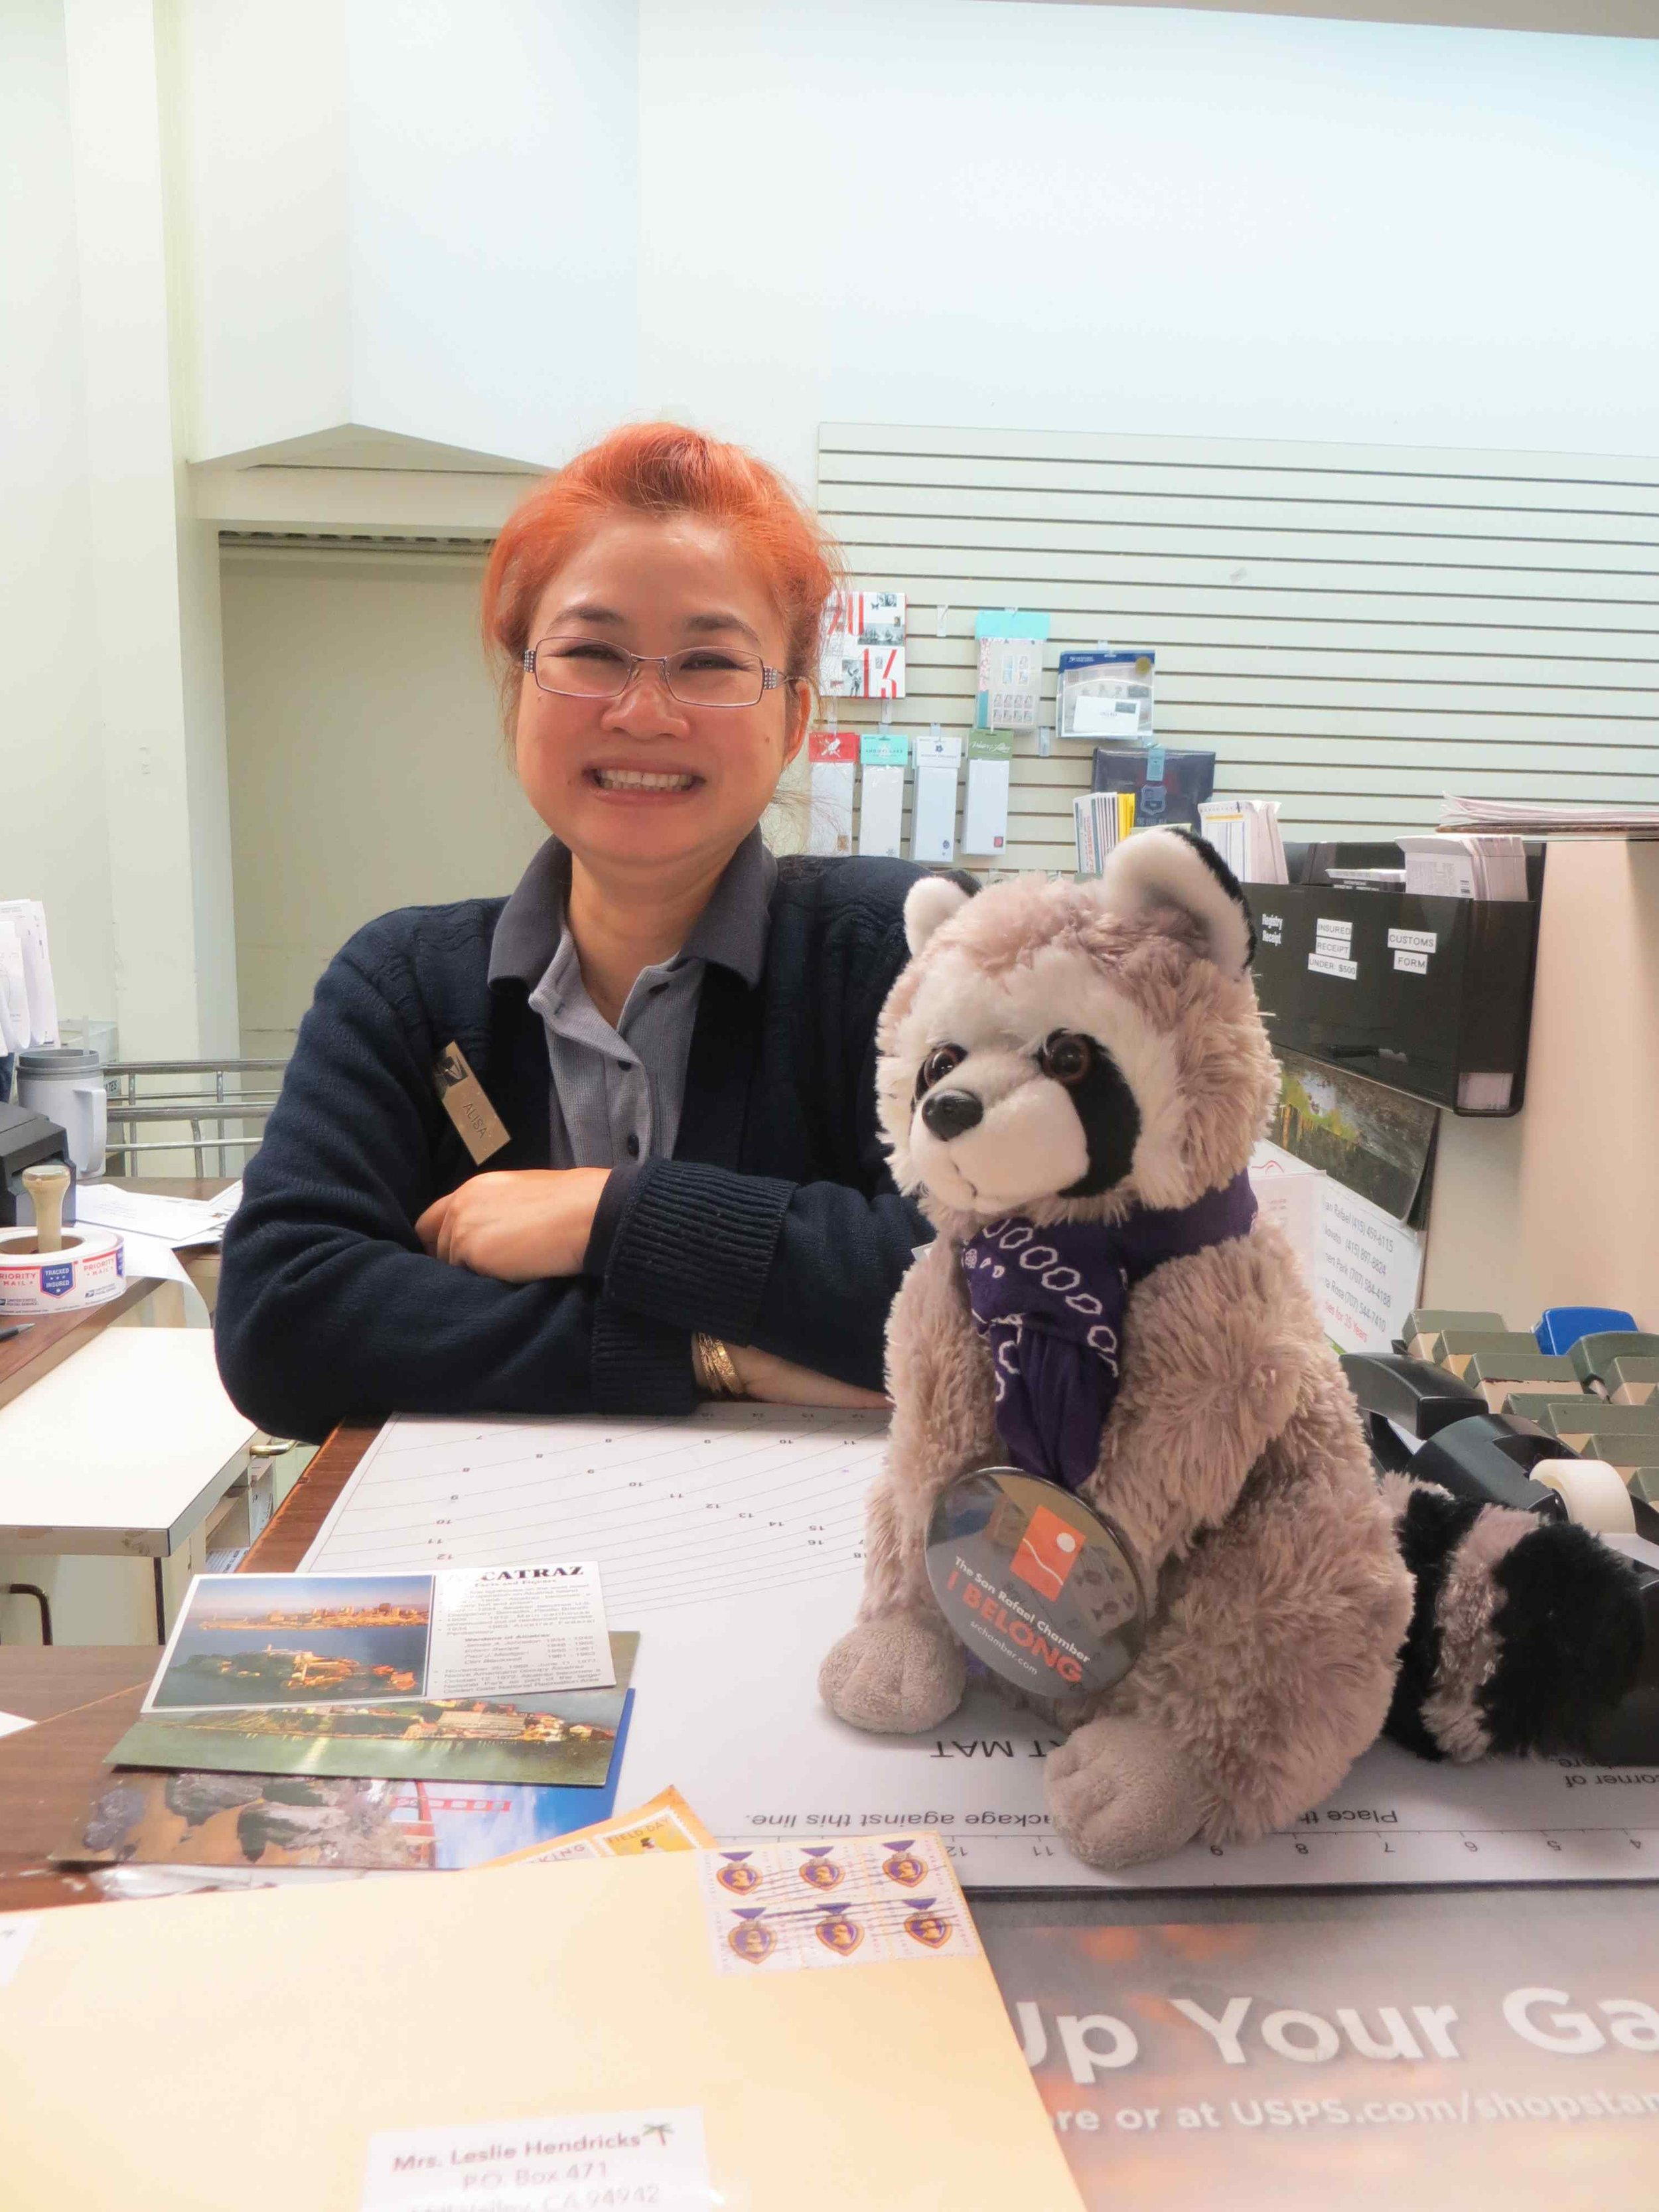 Raphael the Raccoon SRCOC Mascot at Mill Valley Post Office -009 - Copy.jpg